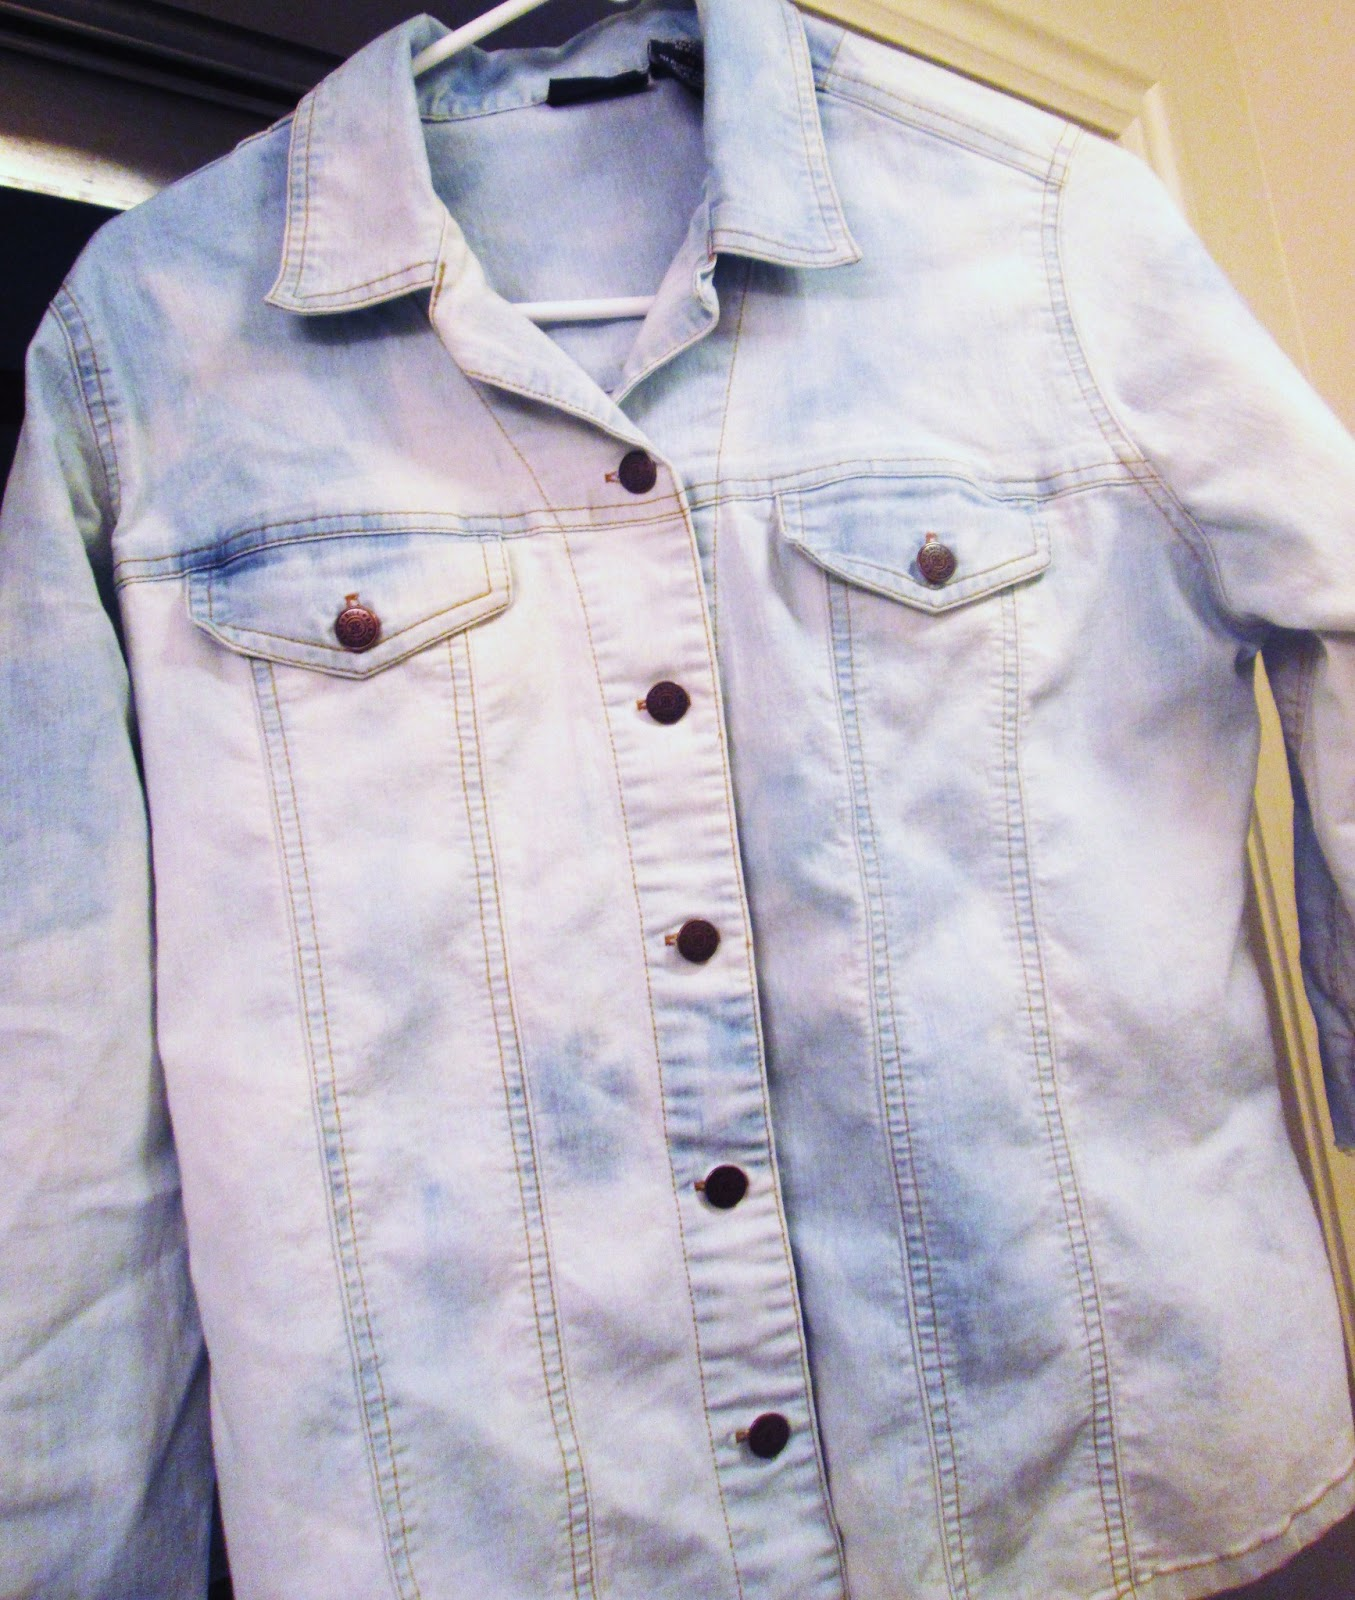 DIY: How to Bleach a Denim Shirt - Unpredictable & Chic